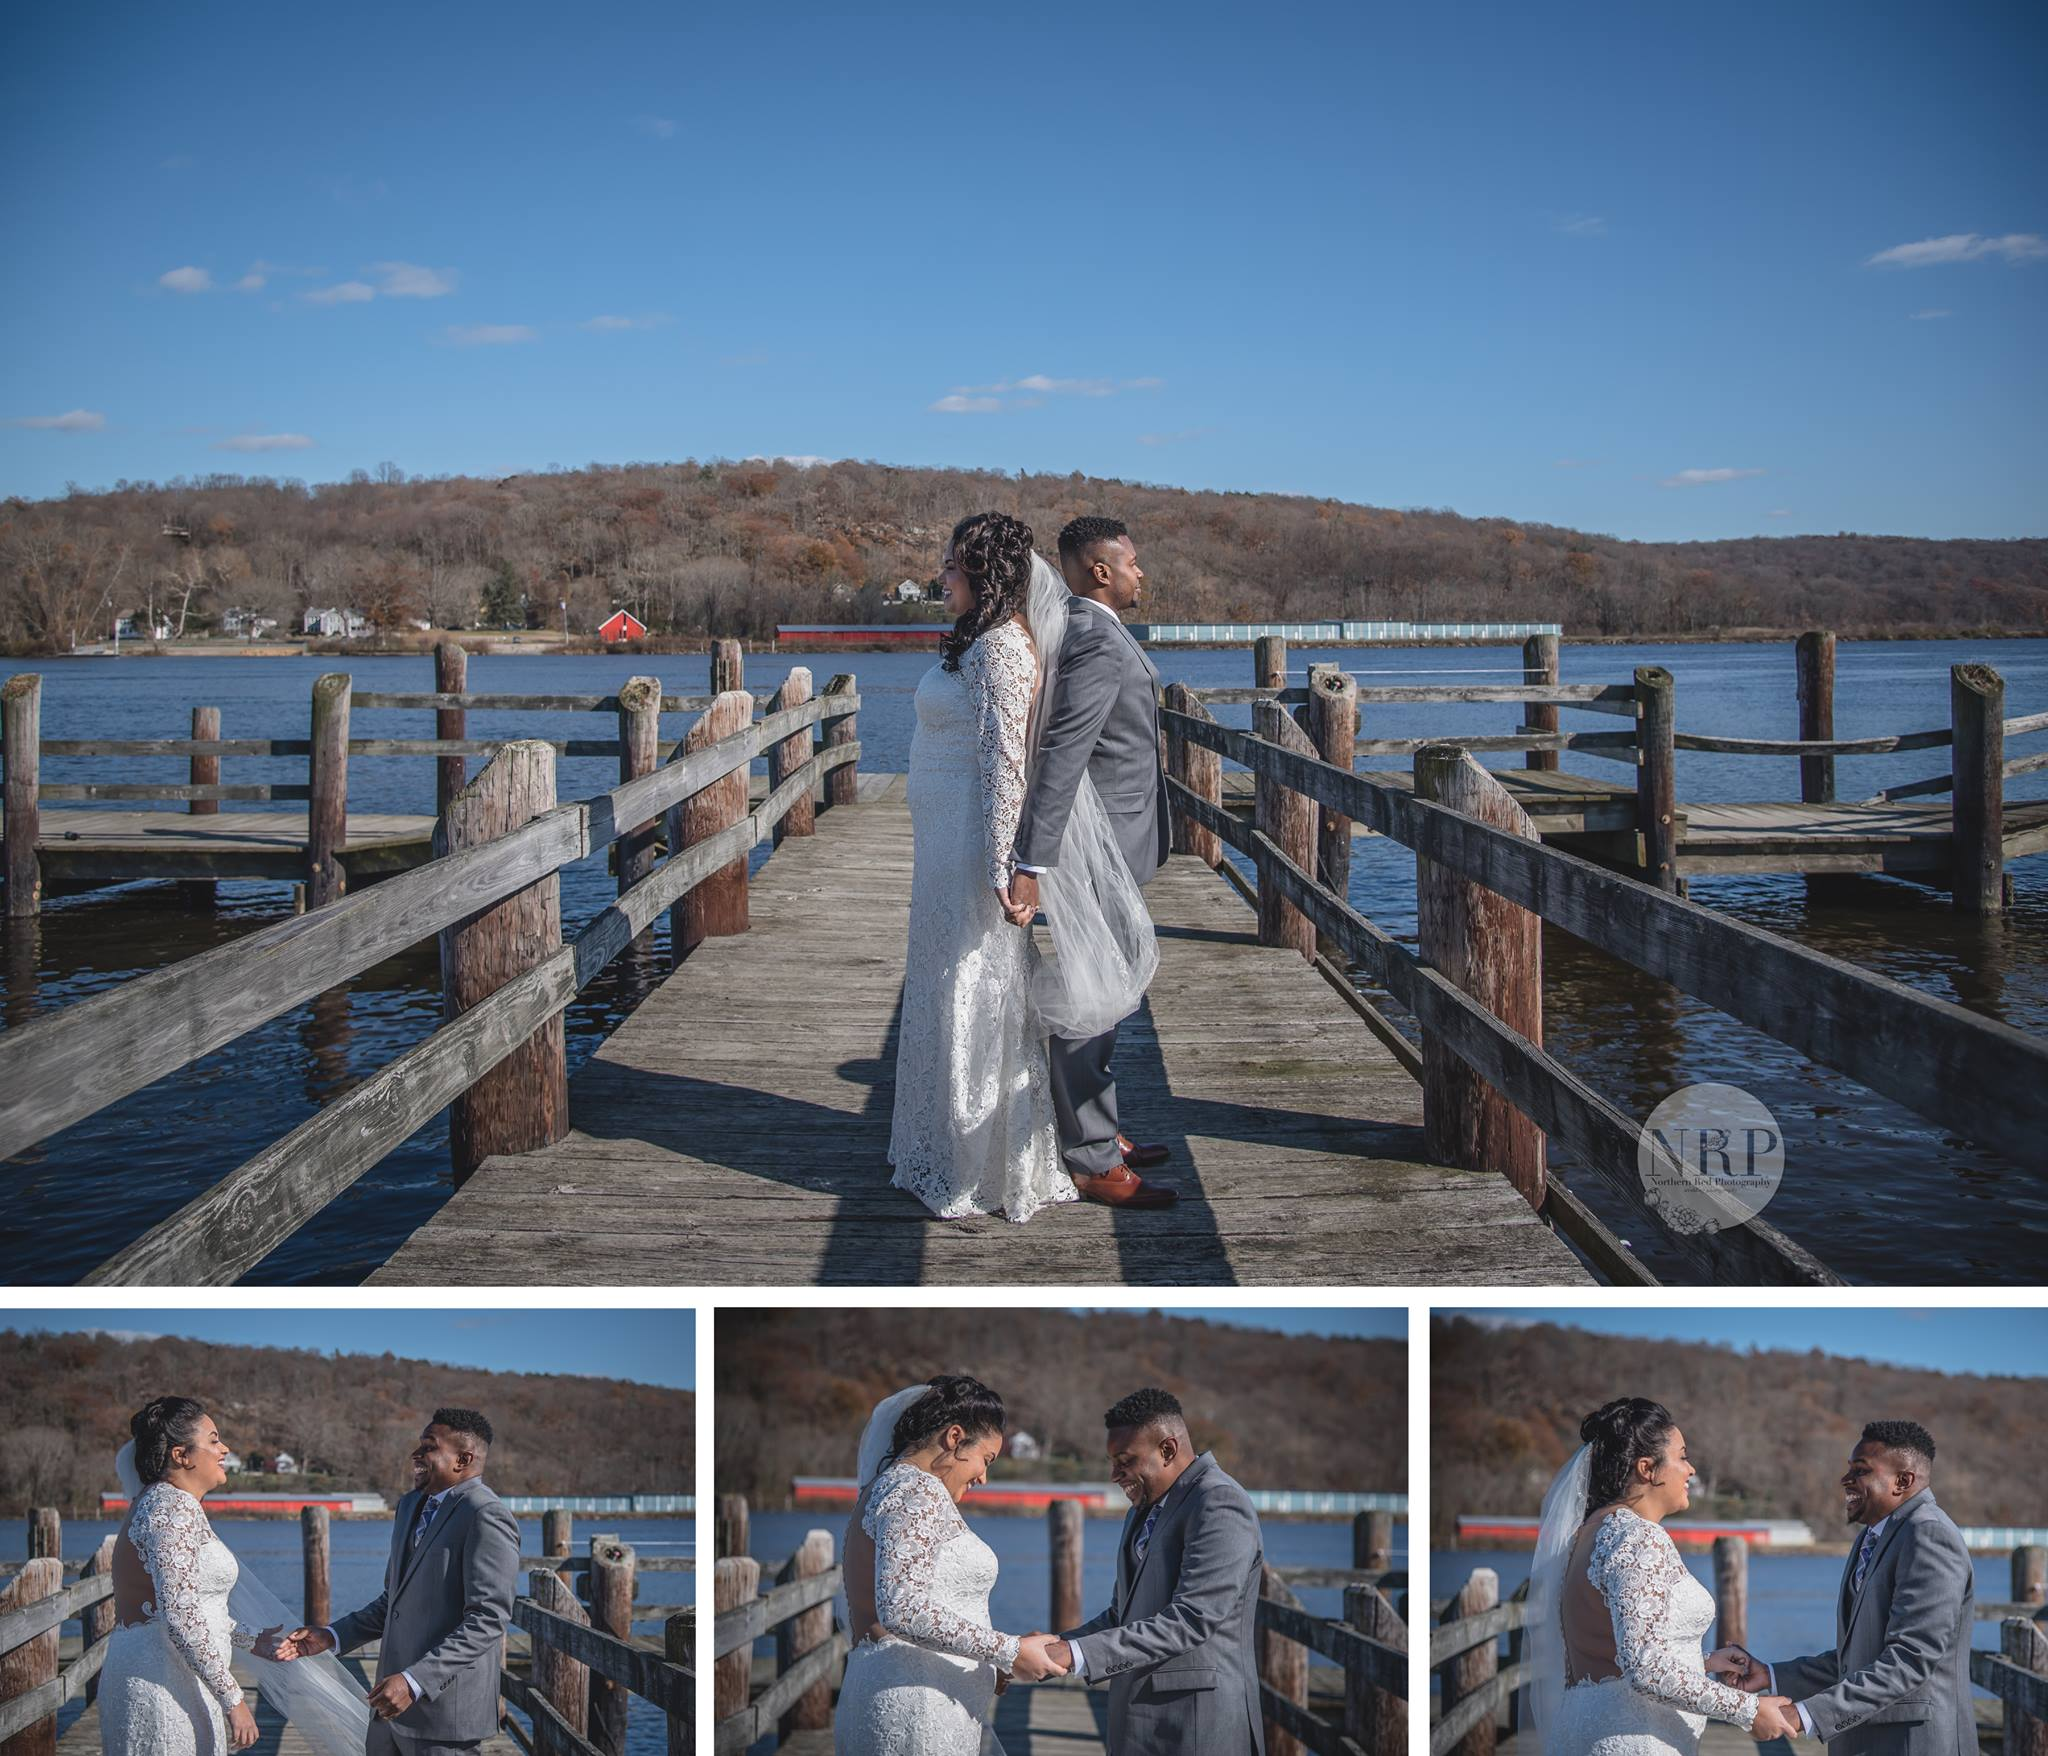 Southern Wedding Photographer | Northern Red Photographer